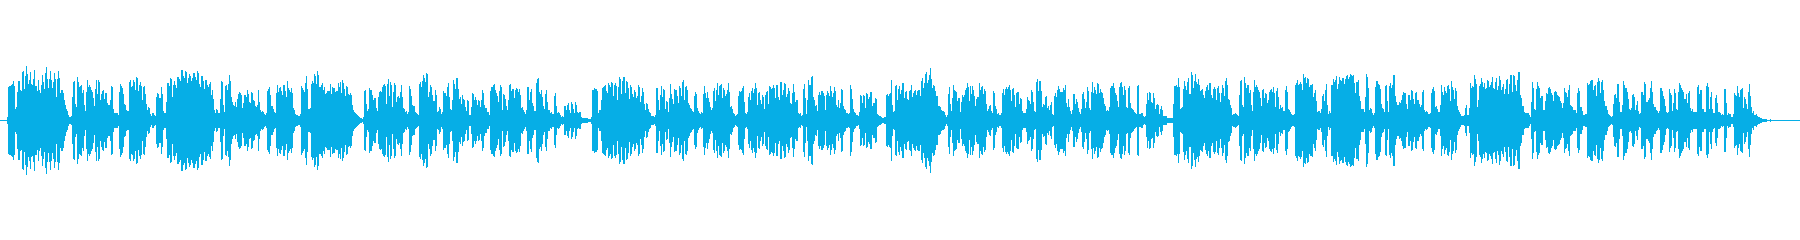 Flute solo song inspired by the weather forecast's reproduced waveform